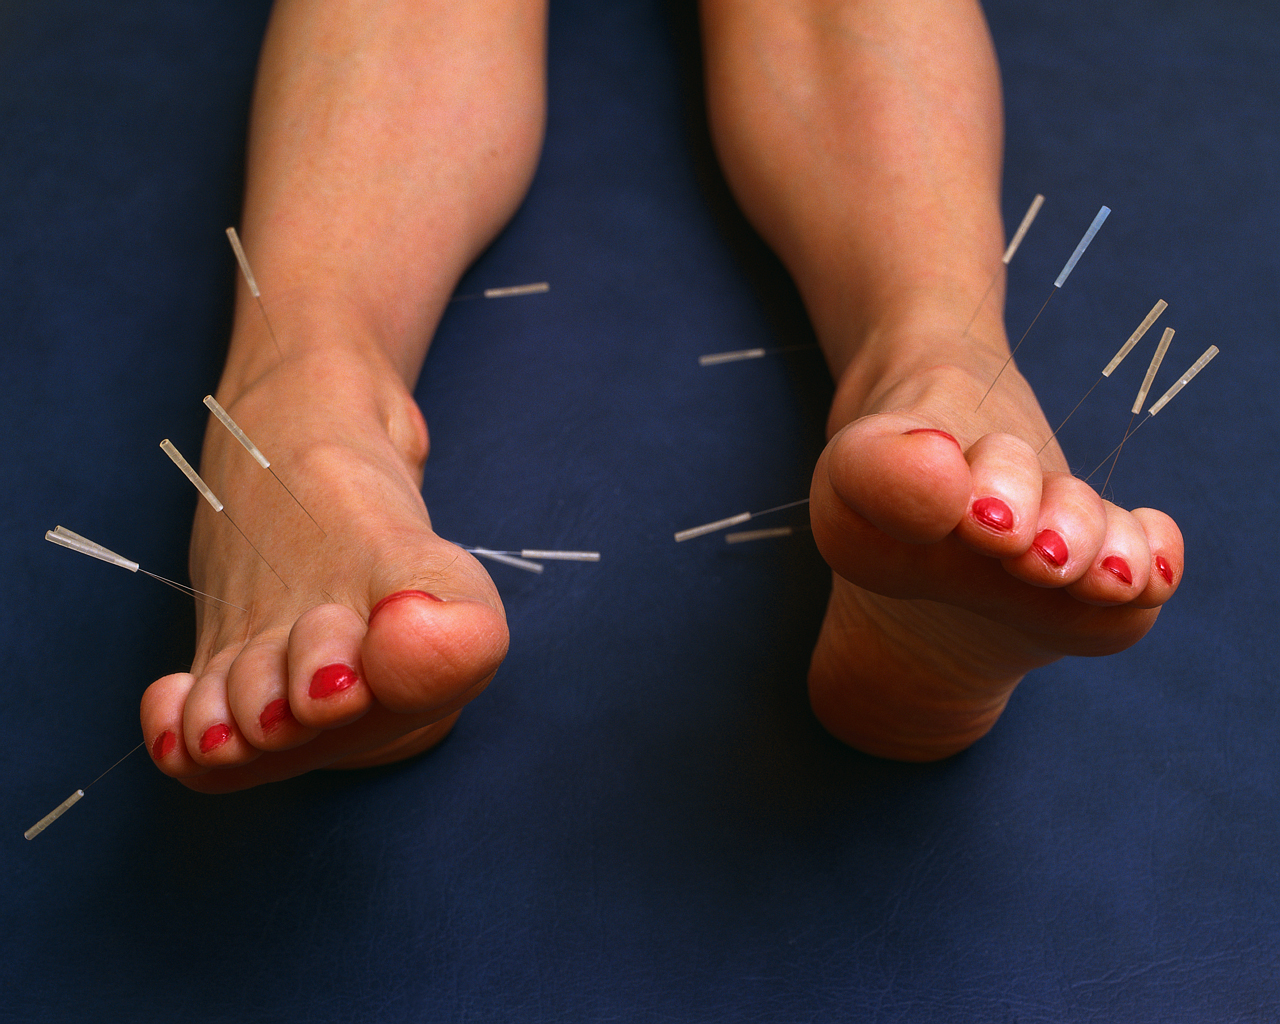 Acupuncture Needles Sticking Out from Feet